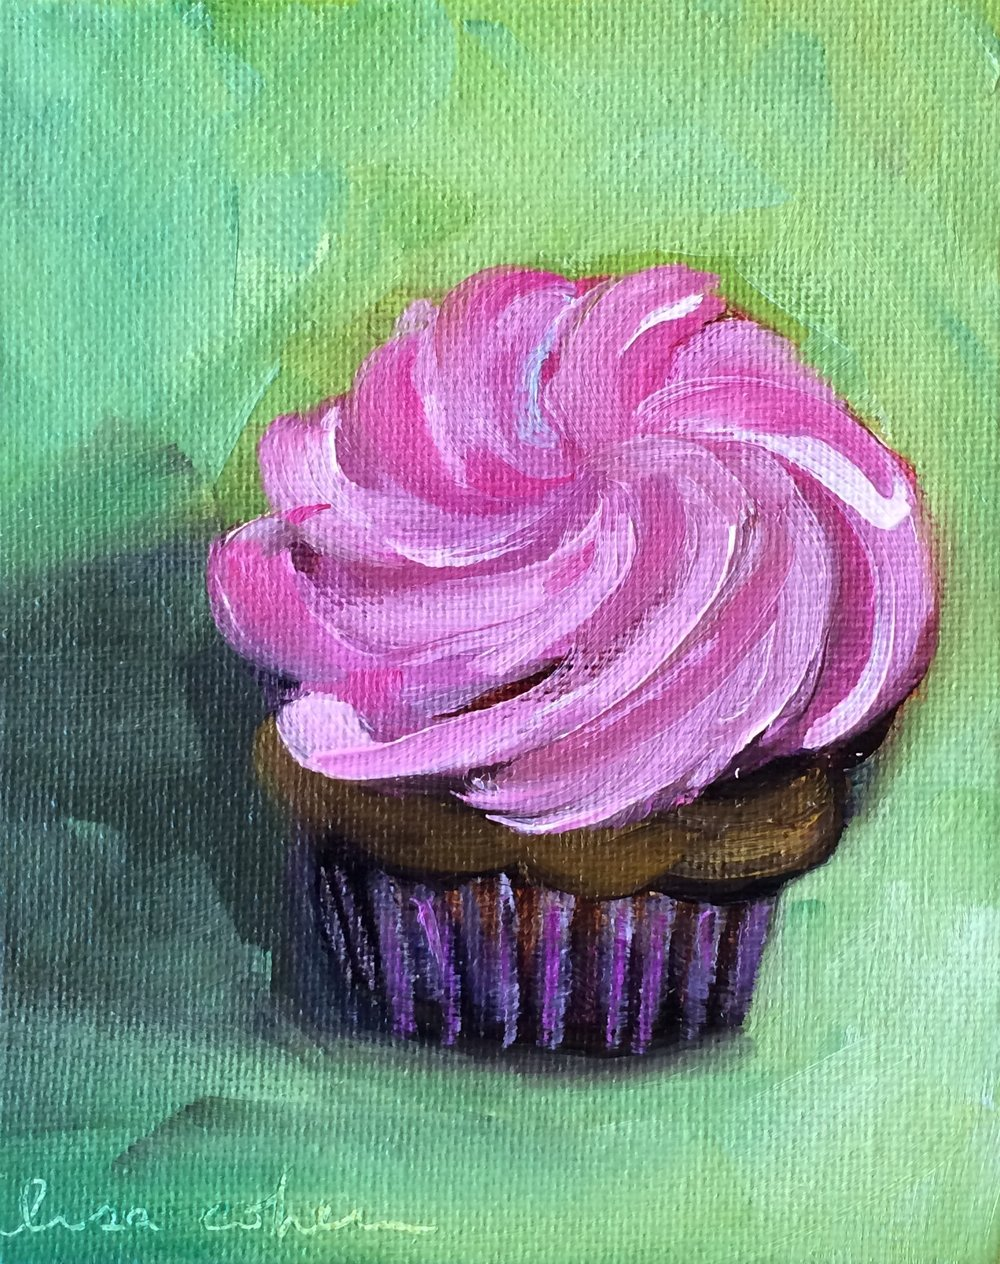 84 Chocolate Raspberry Cupcake Original Painting - Lisa Cohen.jpg